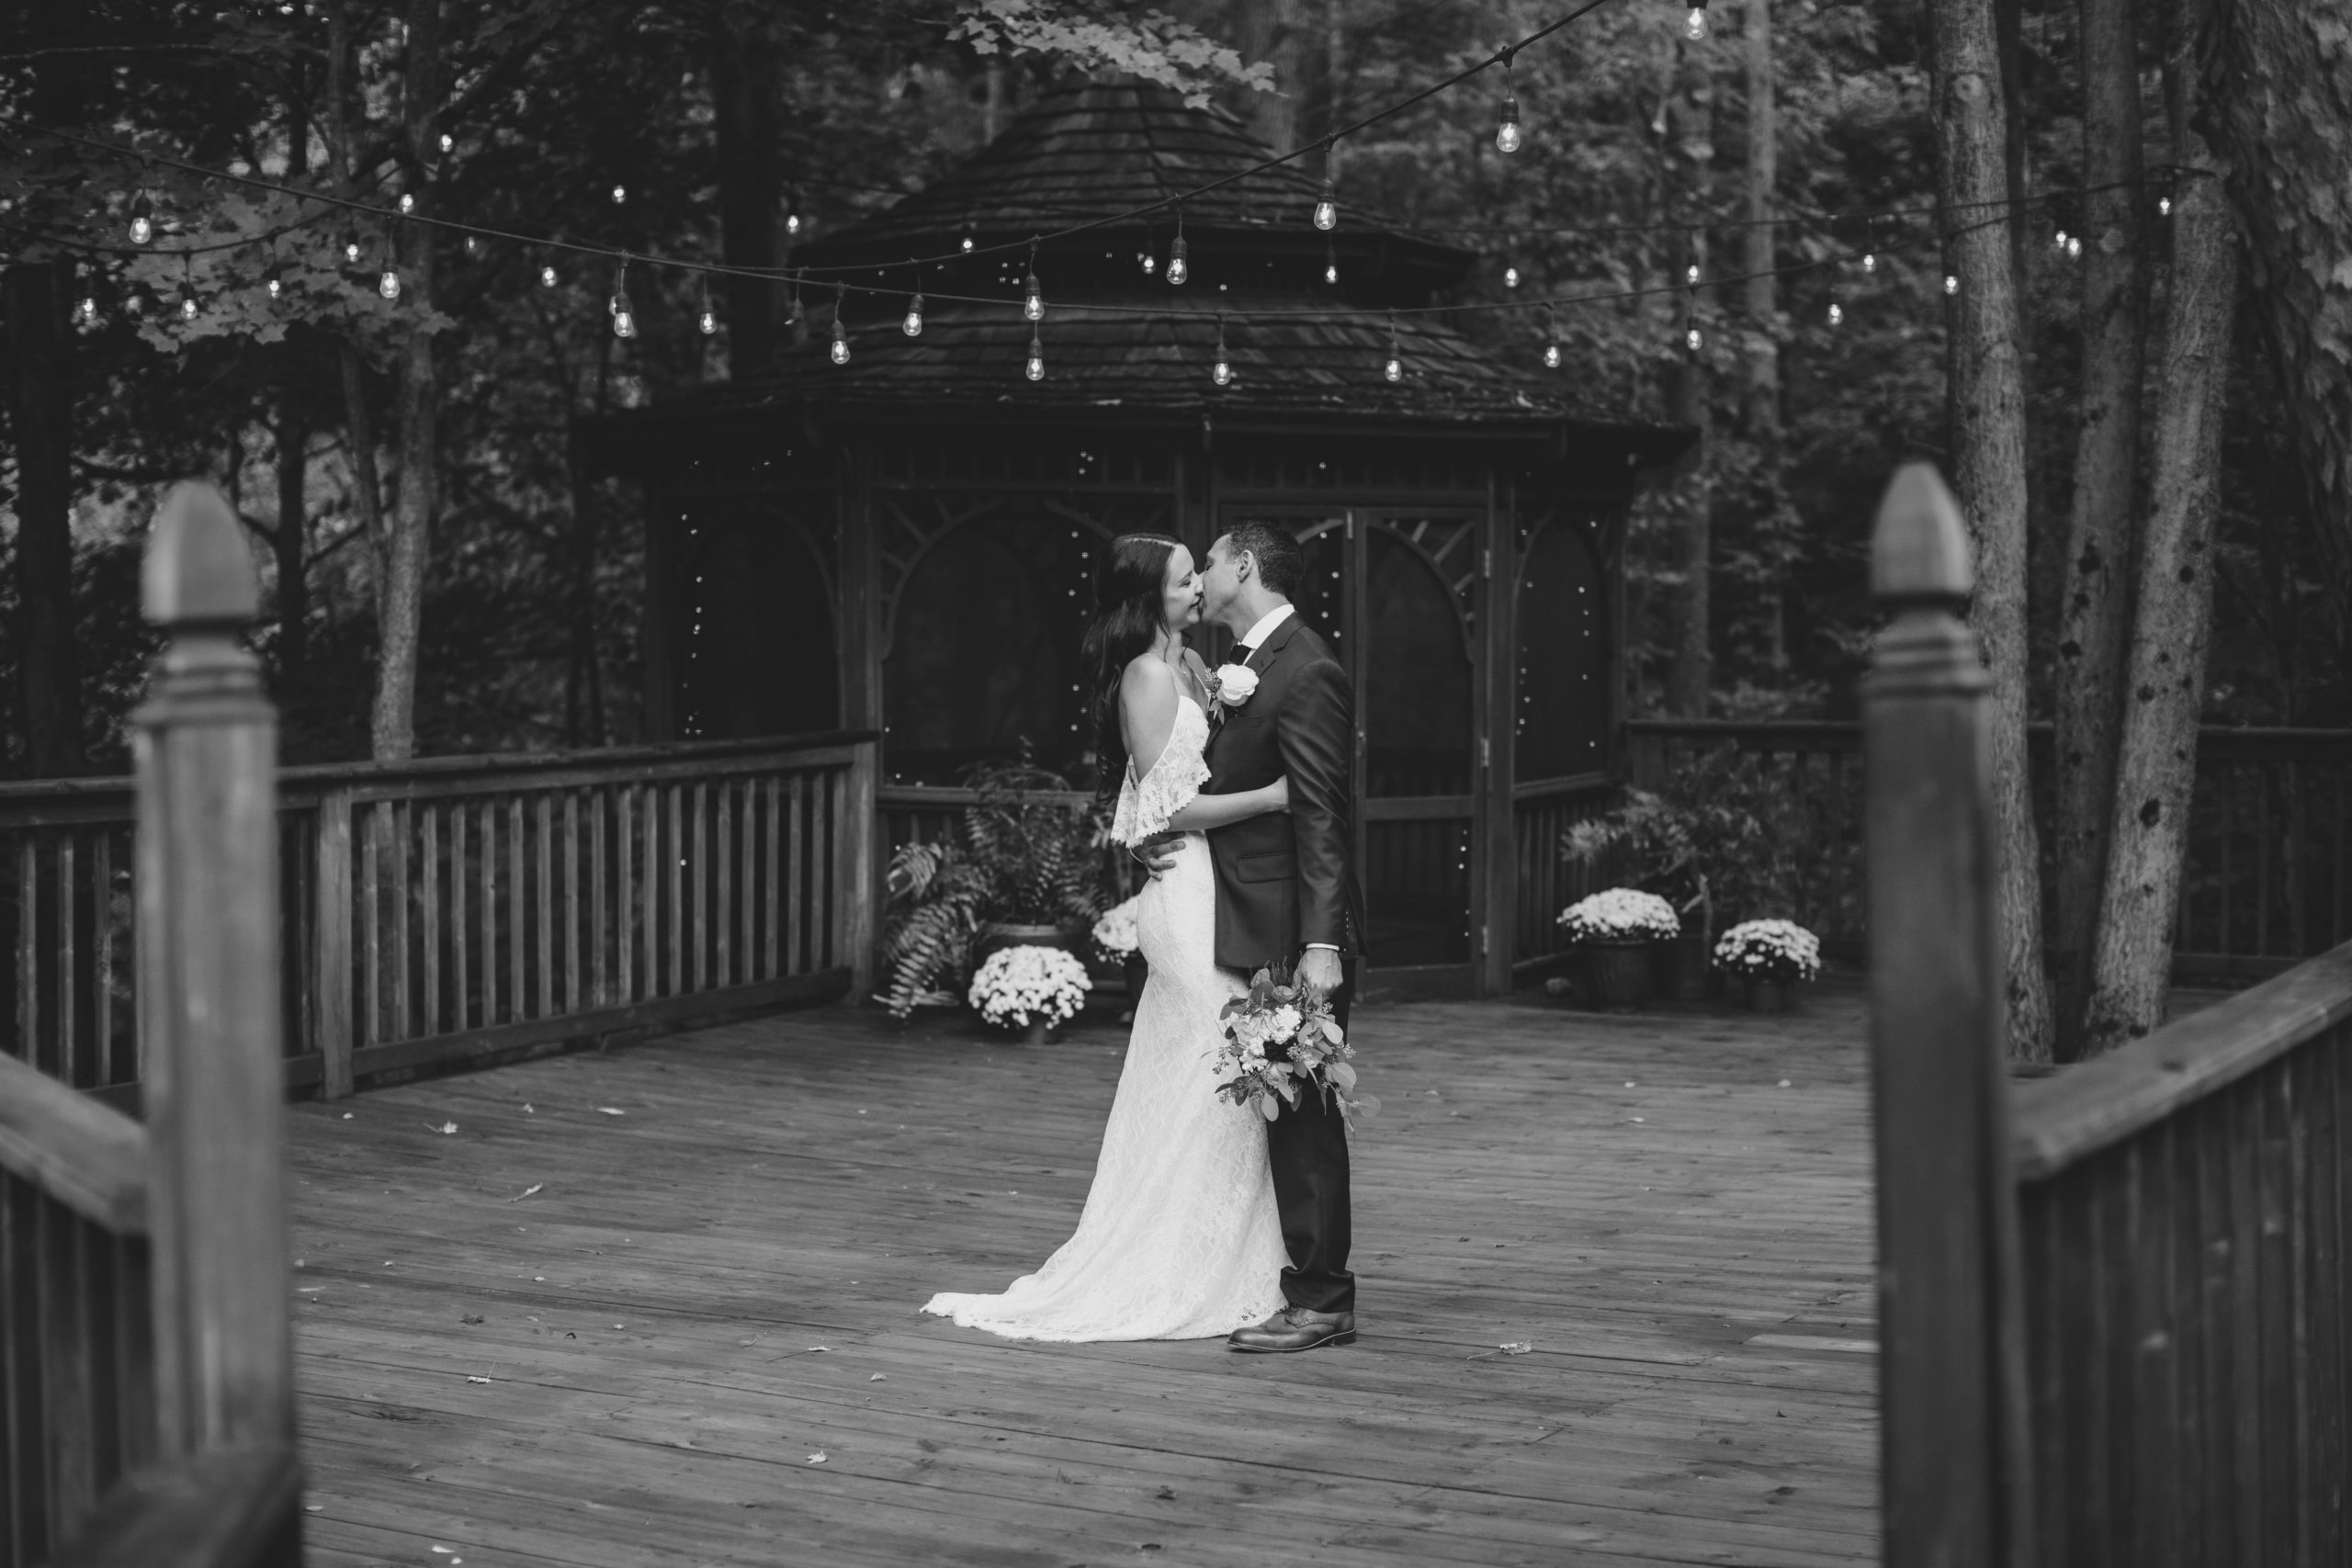 wedding couple on deck by gazebo with string lights and lush green trees surrounding them